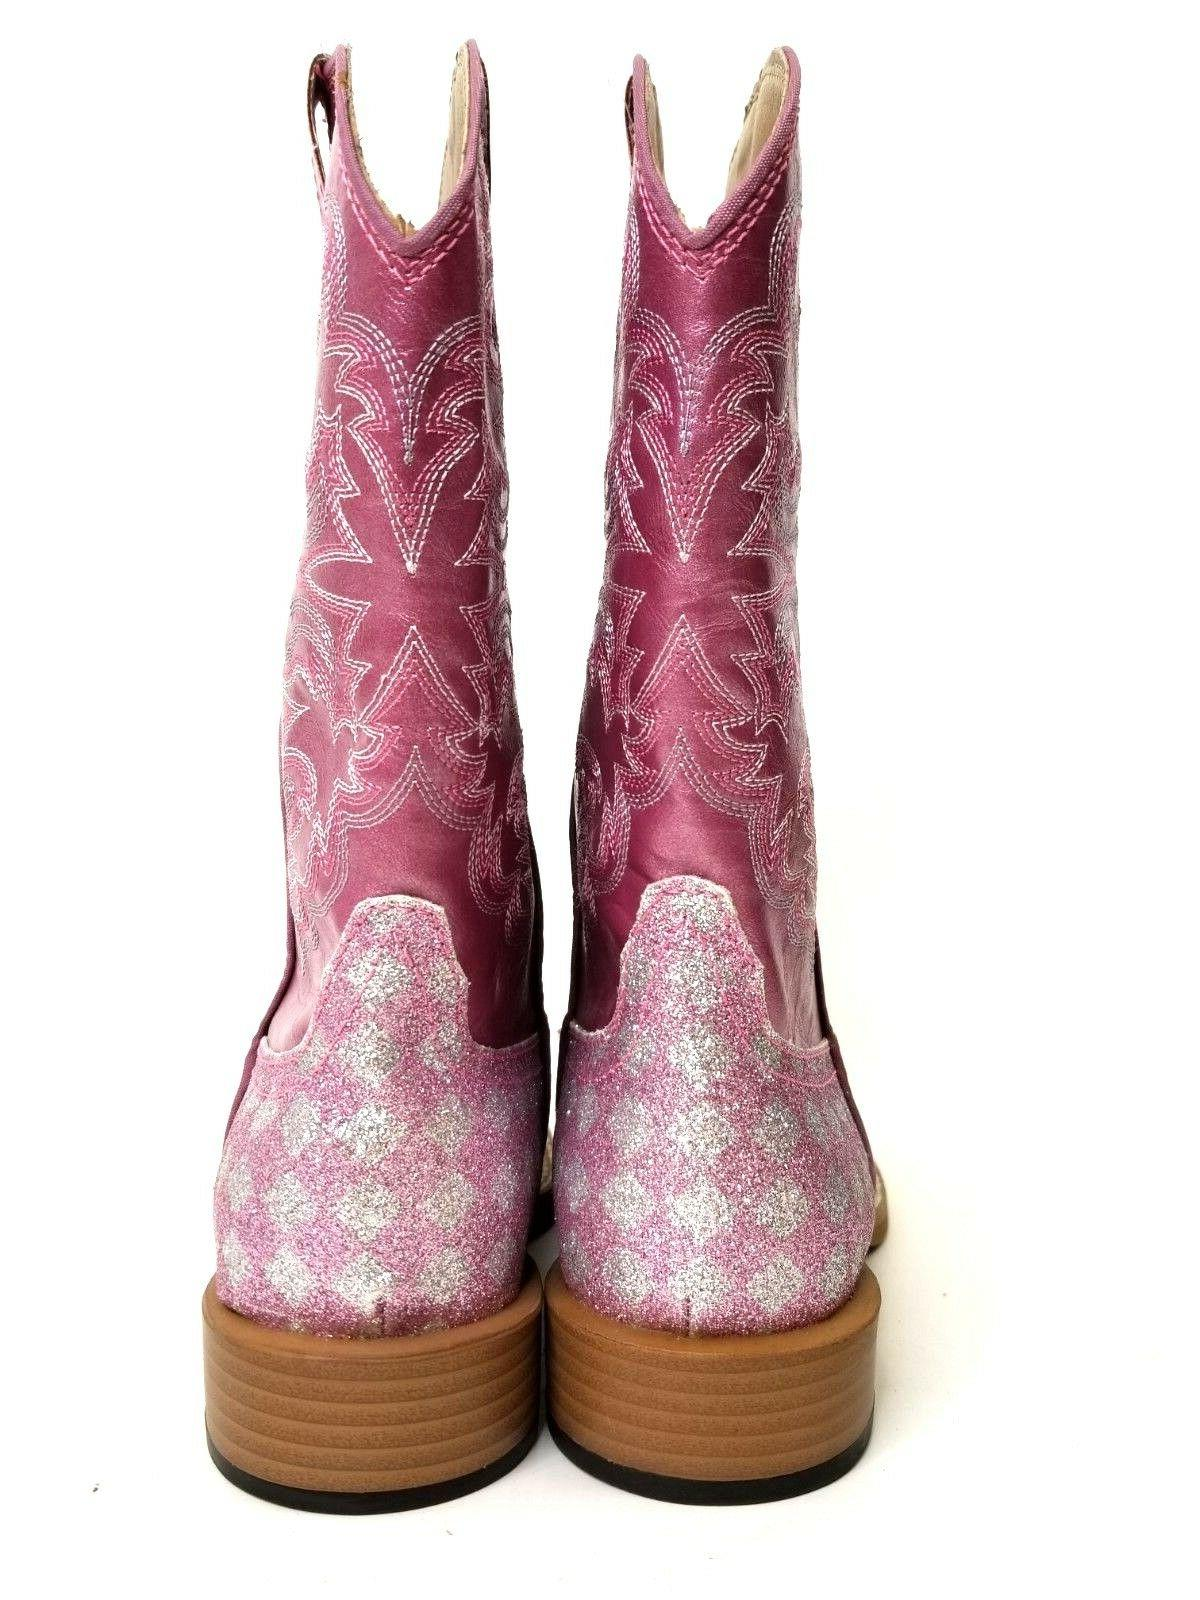 Roper Girls Boots Size 3 Pink